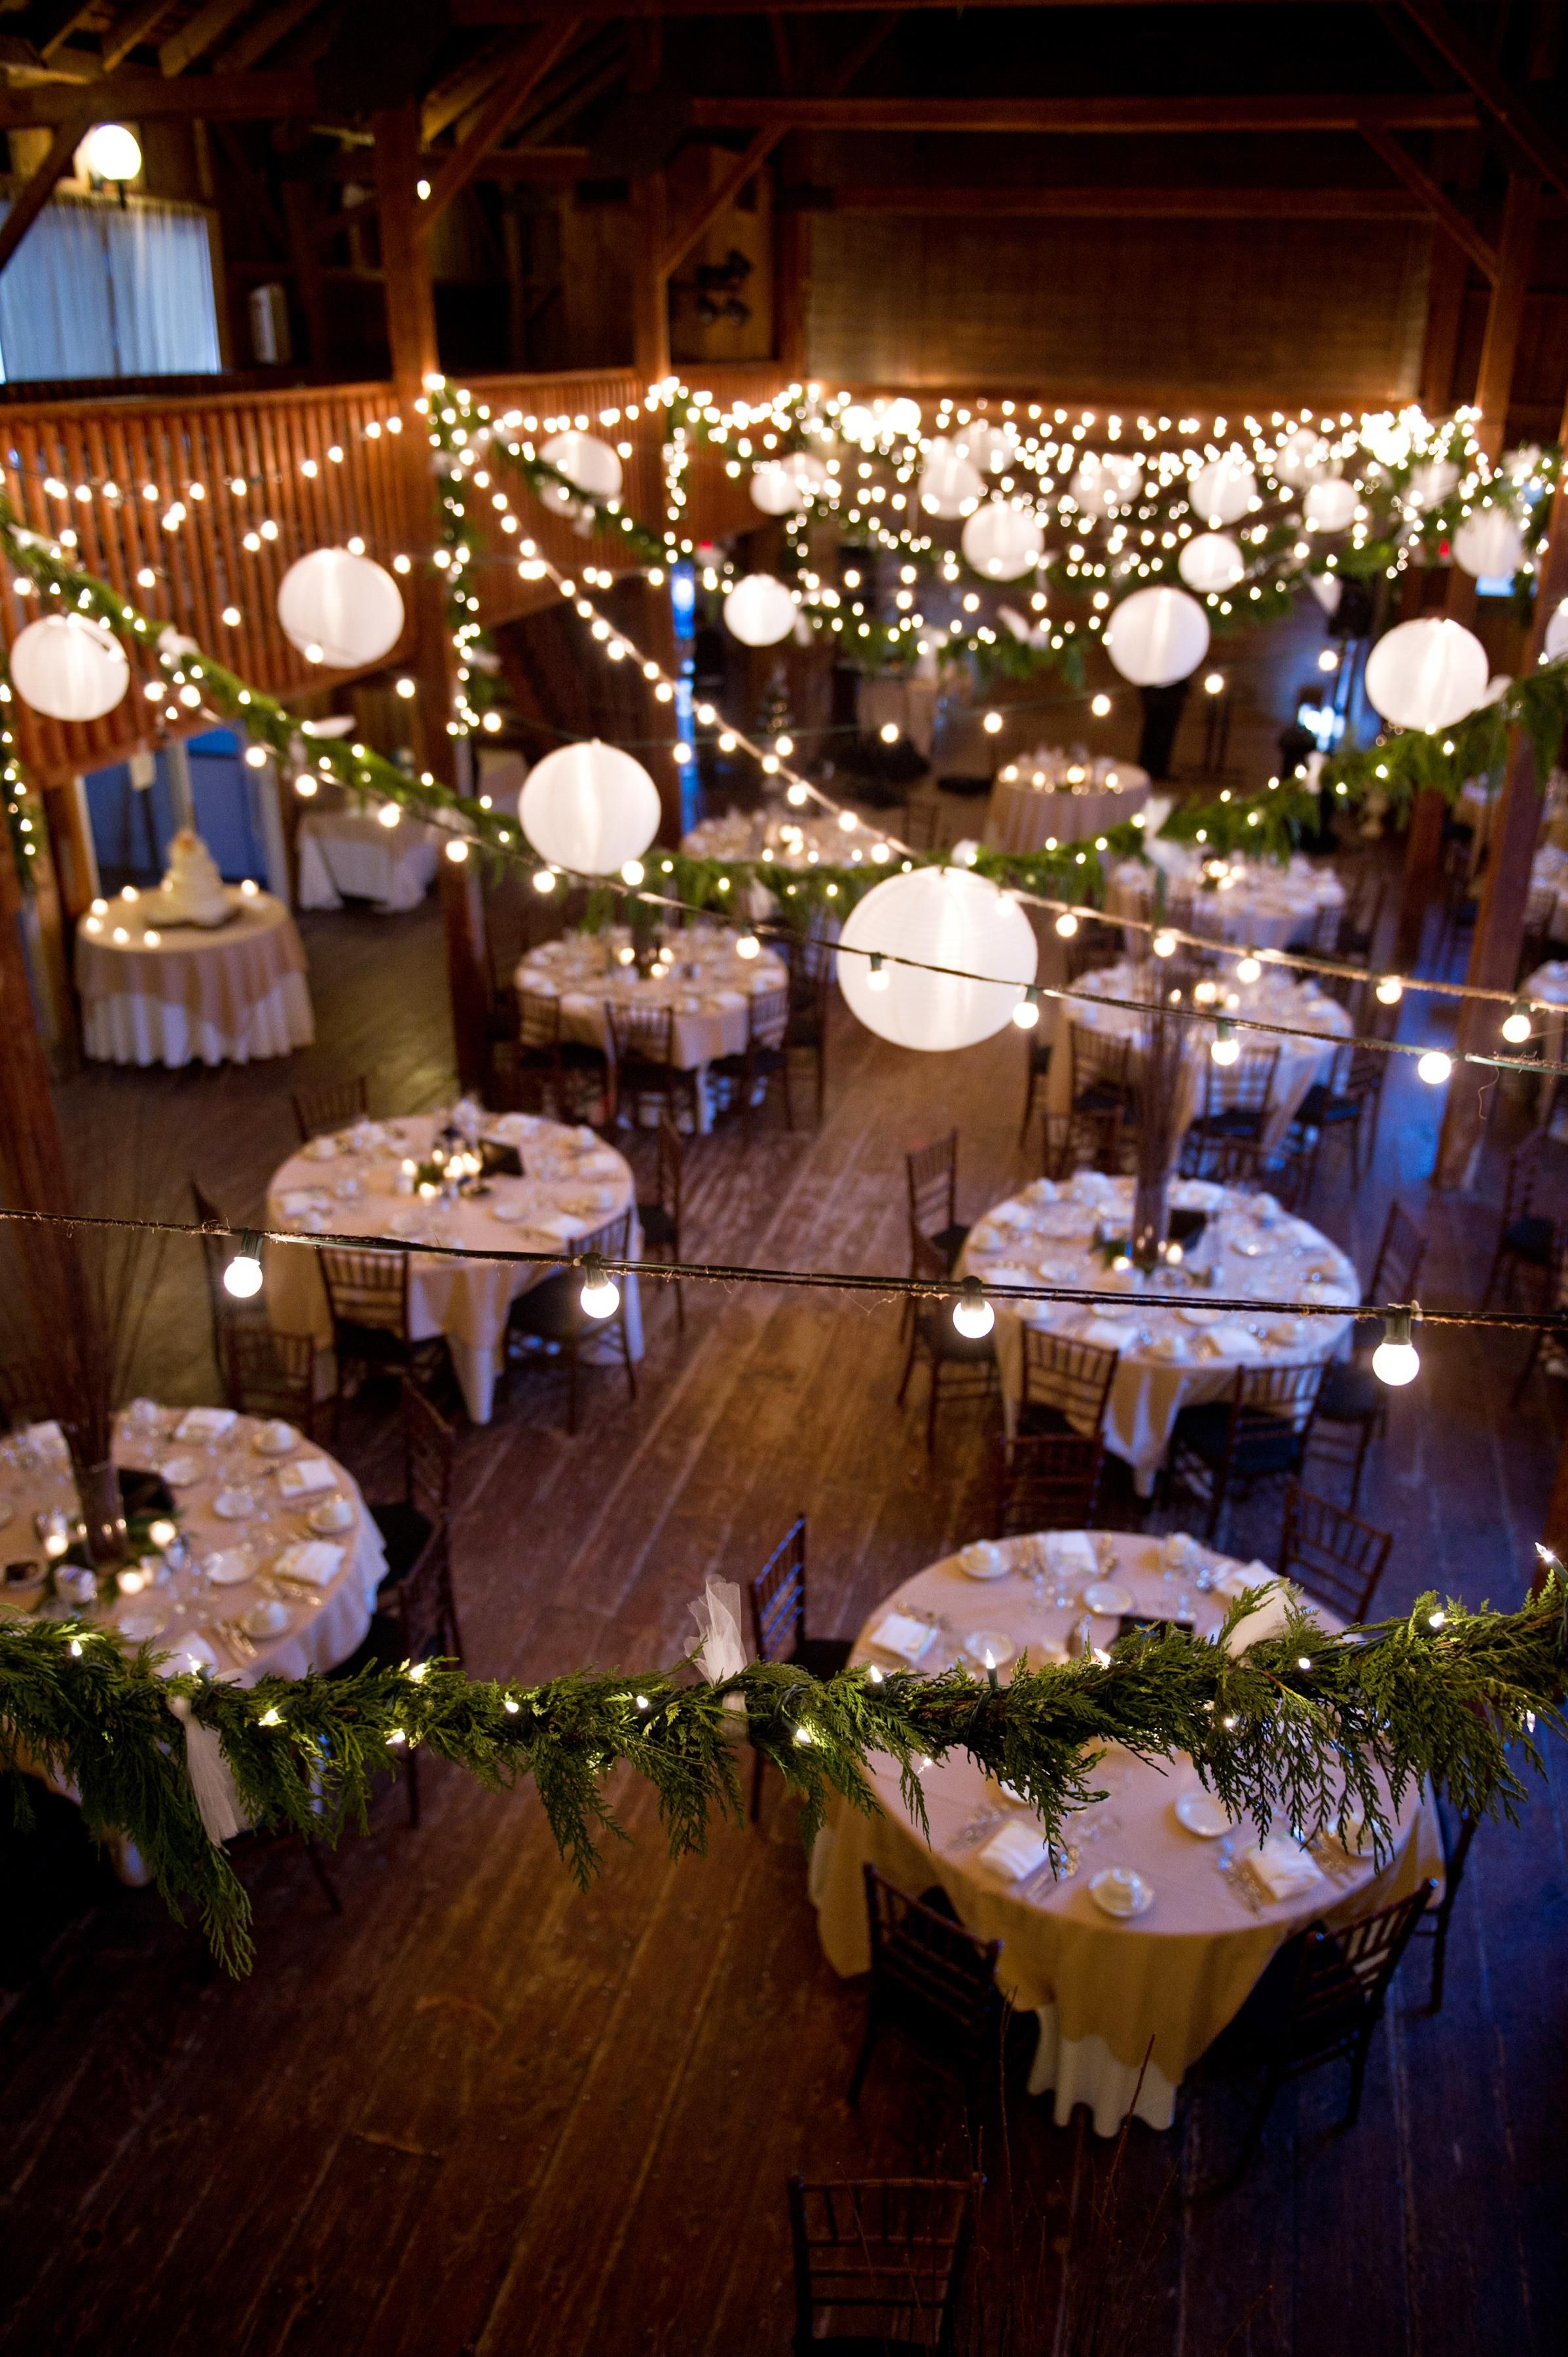 Amy champagne events barn facebook and wedding rustic diy barn wedding greenery garland lights and lanterns solutioingenieria Images